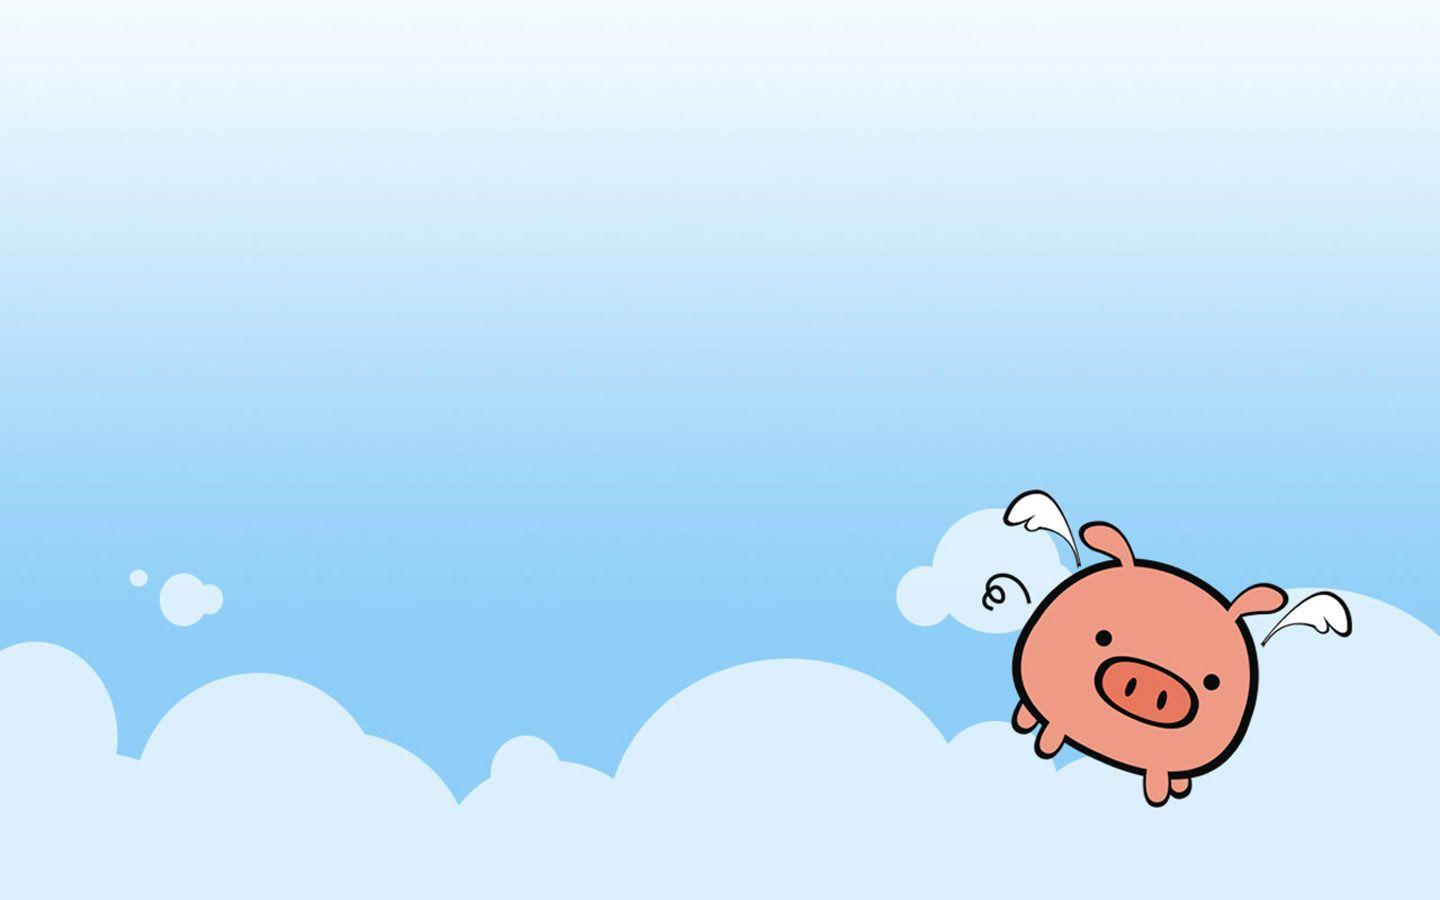 Cute Real Pigs Iphone Wallpaper Cute Pig Wallpapers Wallpaper Cave